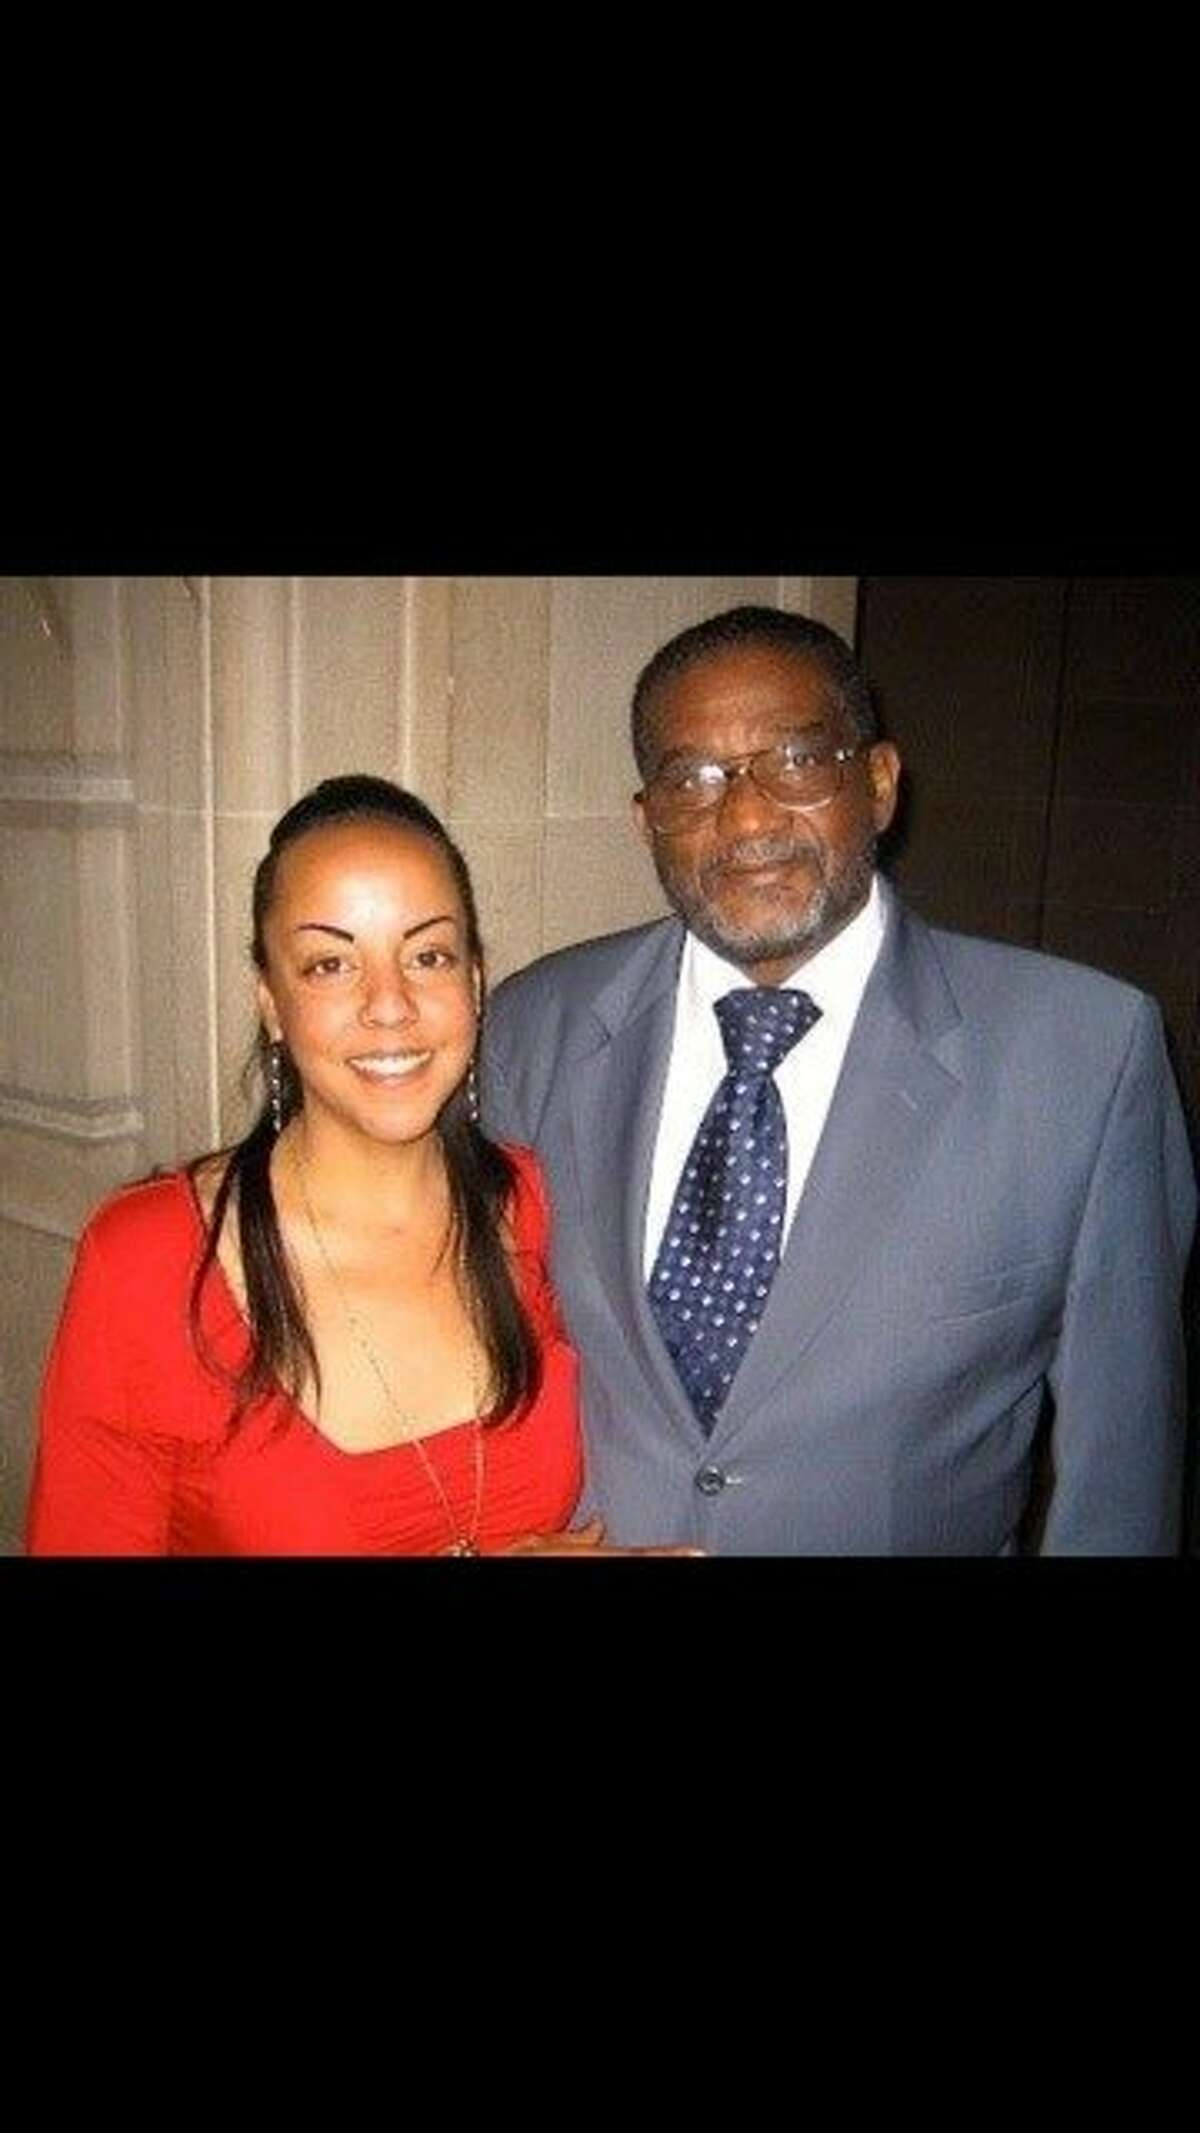 Rev. Arnold Townsend with his late daughter, Rachel Townsend